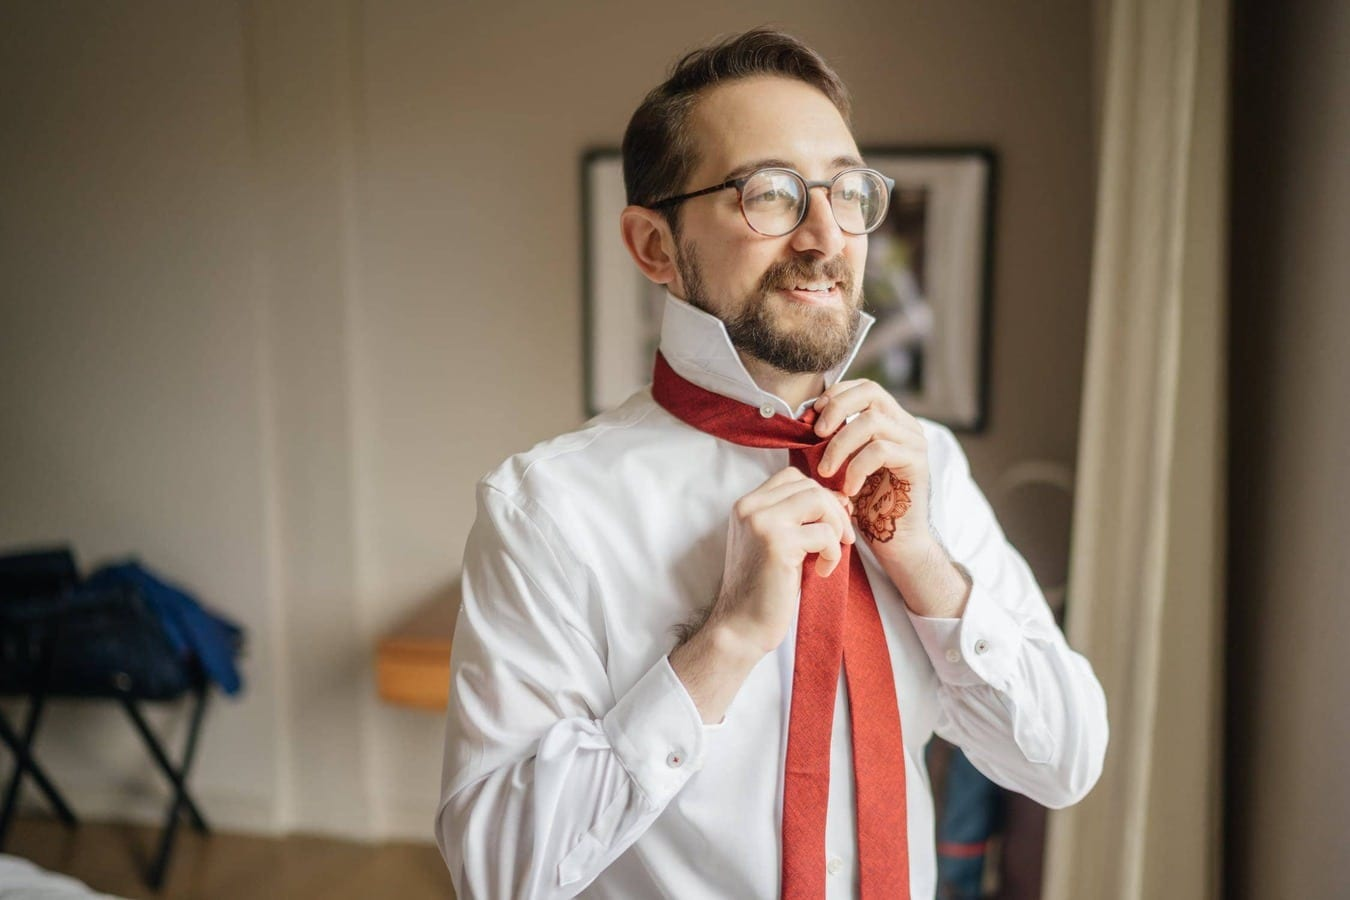 Groom ties red tie by window at Hudson Valley wedding venue.